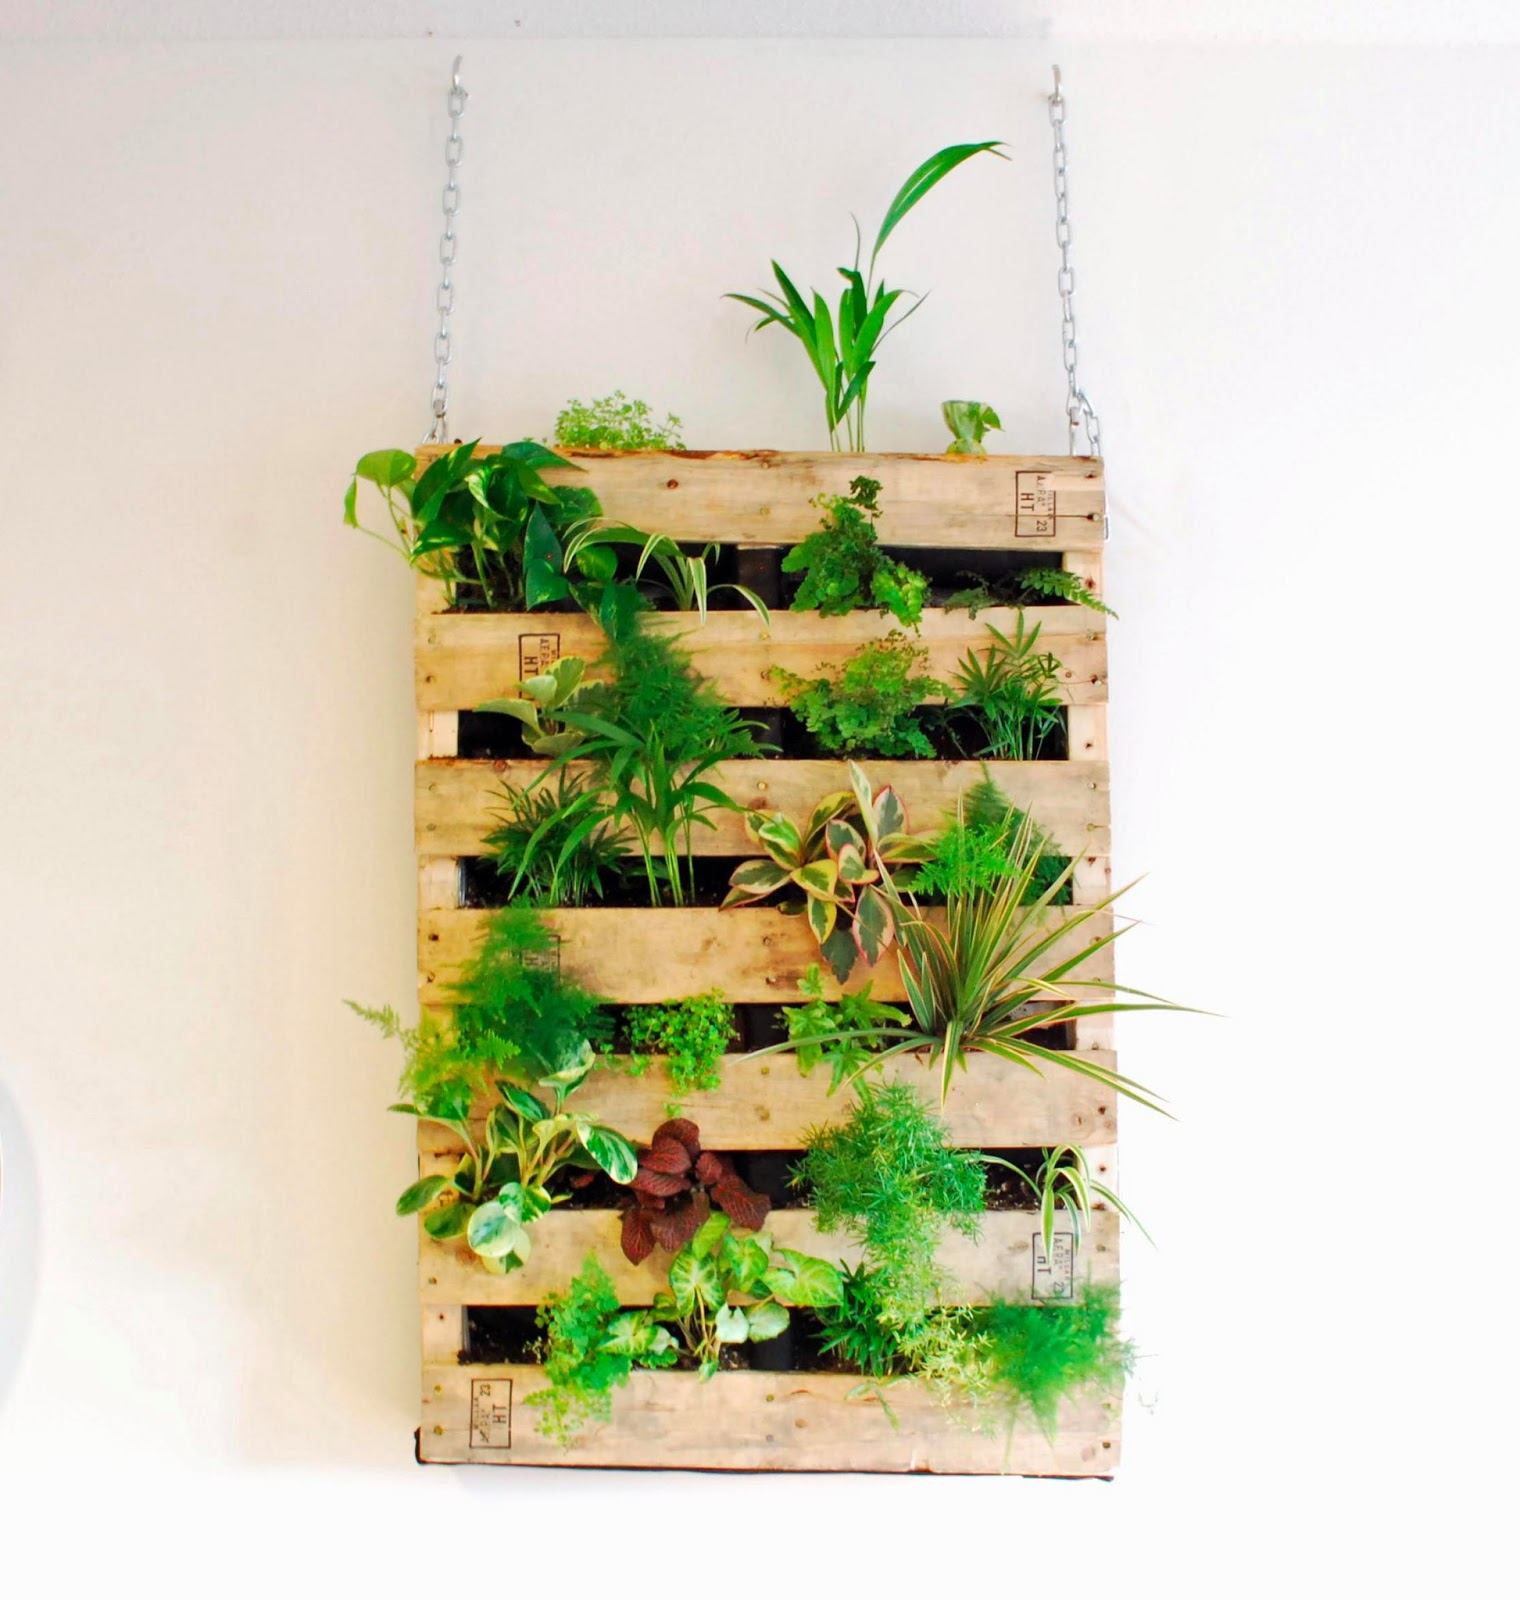 http://drawingsunderthetable.blogspot.com/2013/01/diy-pallet-vertical-garden.html